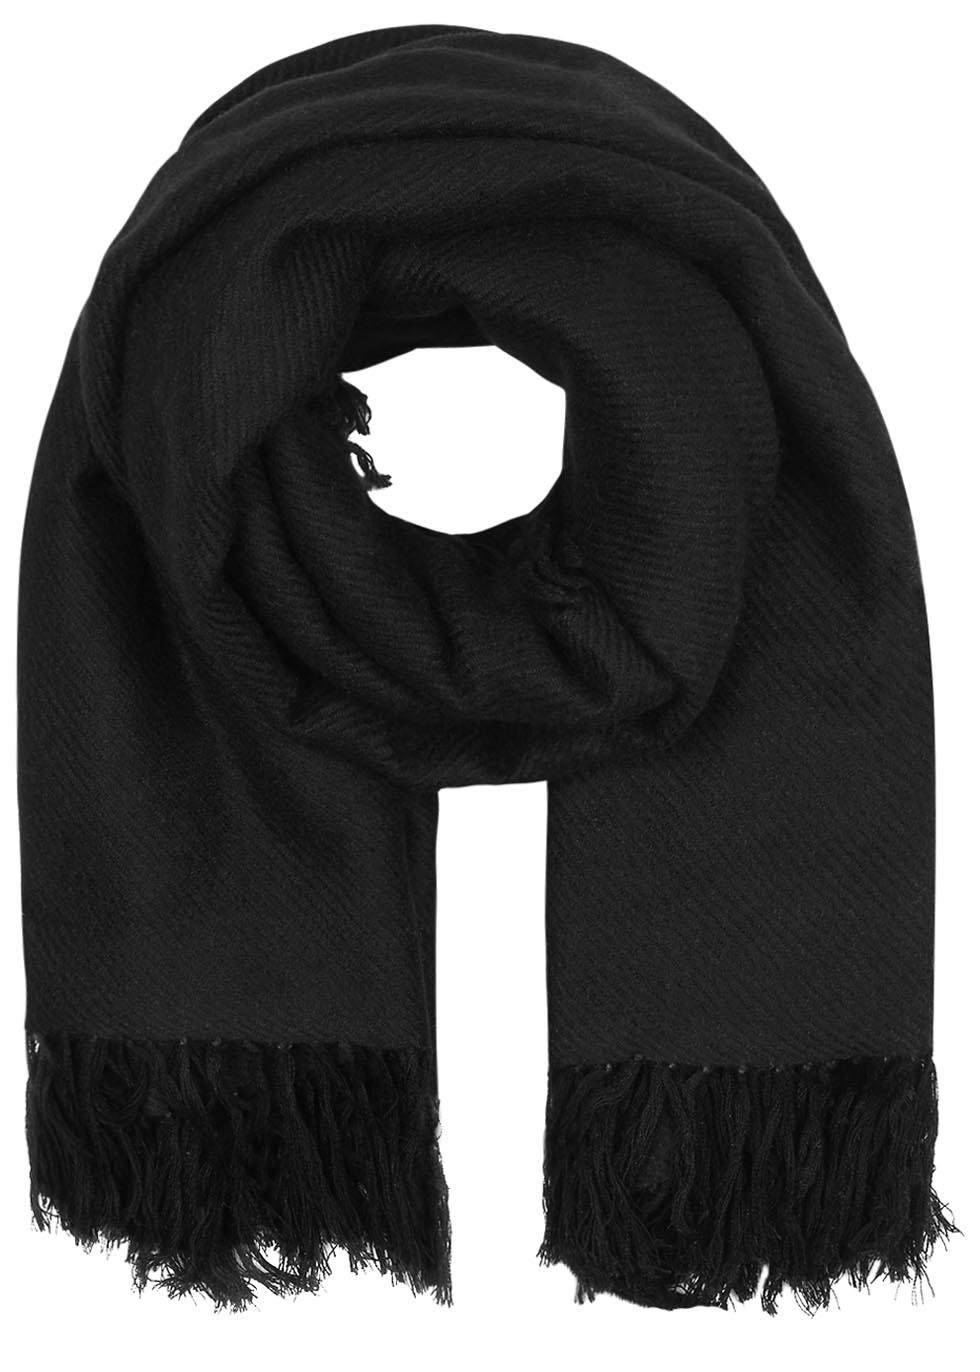 Zila Black Fringed Cashmere Blend Scarf - predominant colour: black; occasions: casual; type of pattern: standard; style: regular; size: standard; pattern: plain; material: cashmere; season: s/s 2016